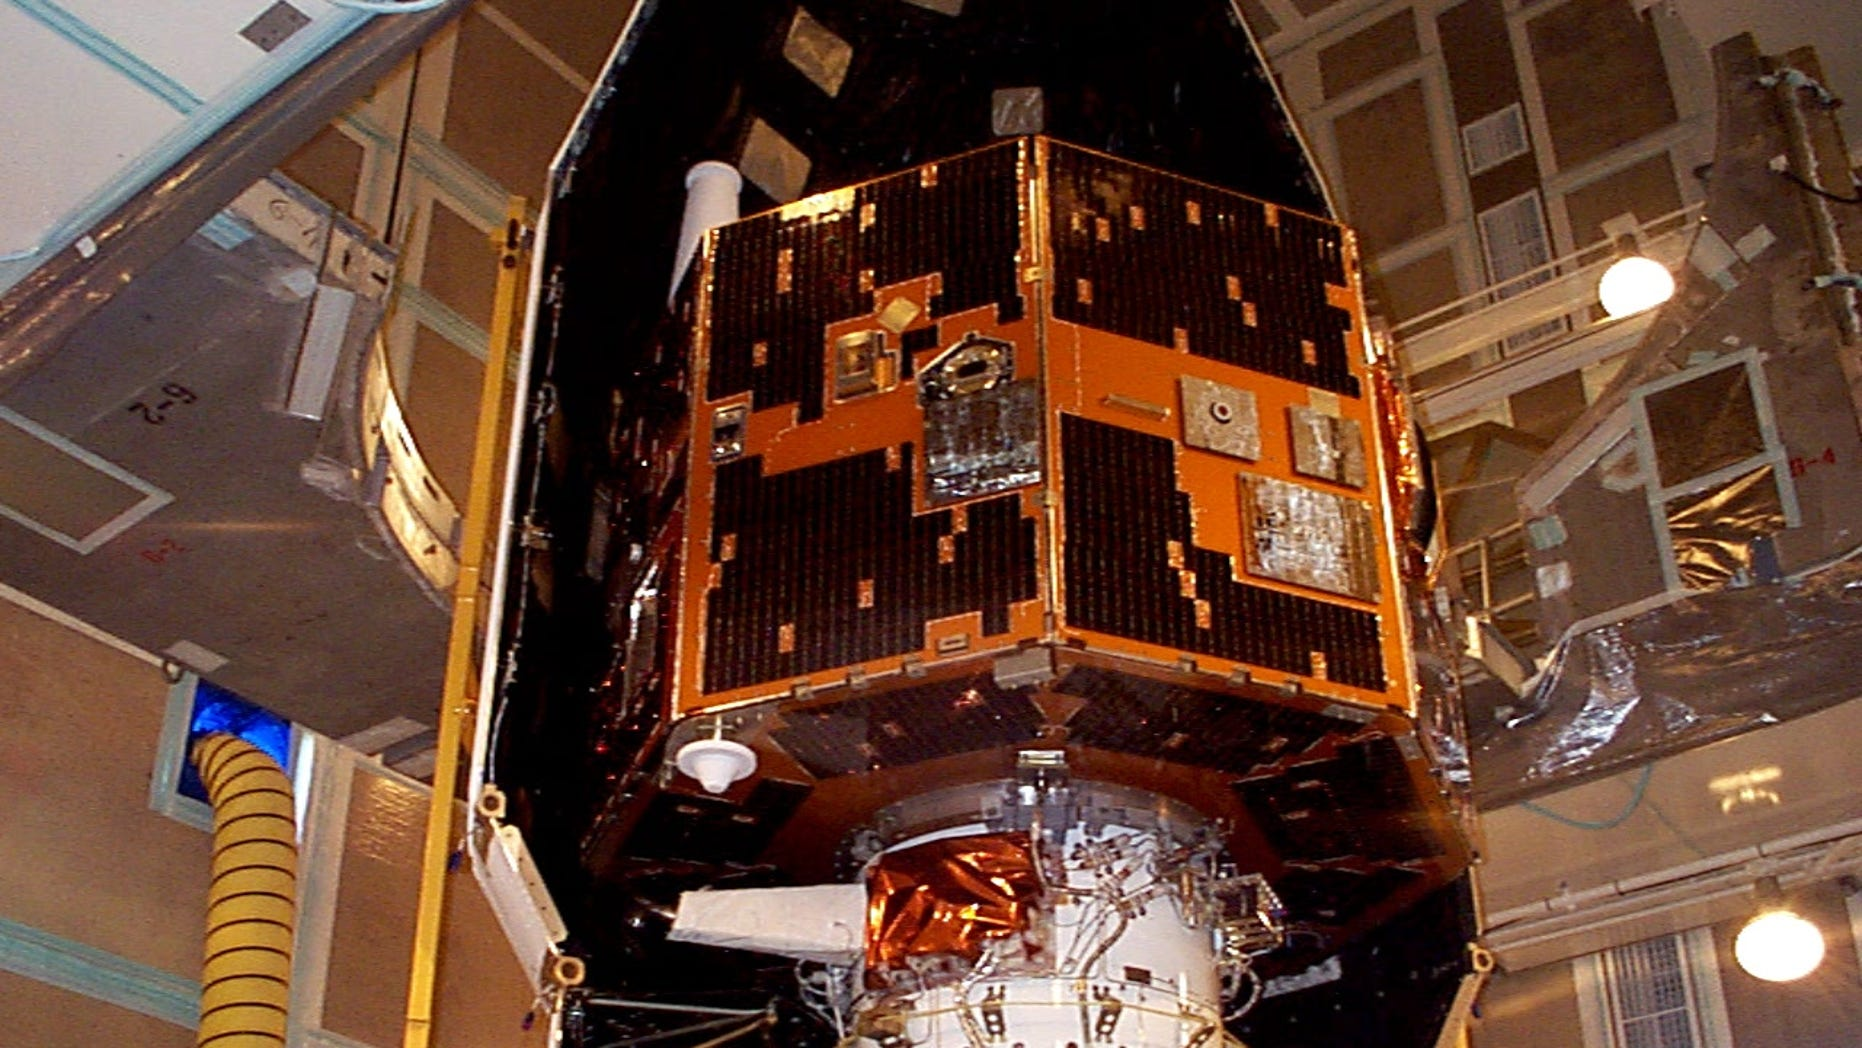 The IMAGE spacecraft as seen in 2000, before its launch.